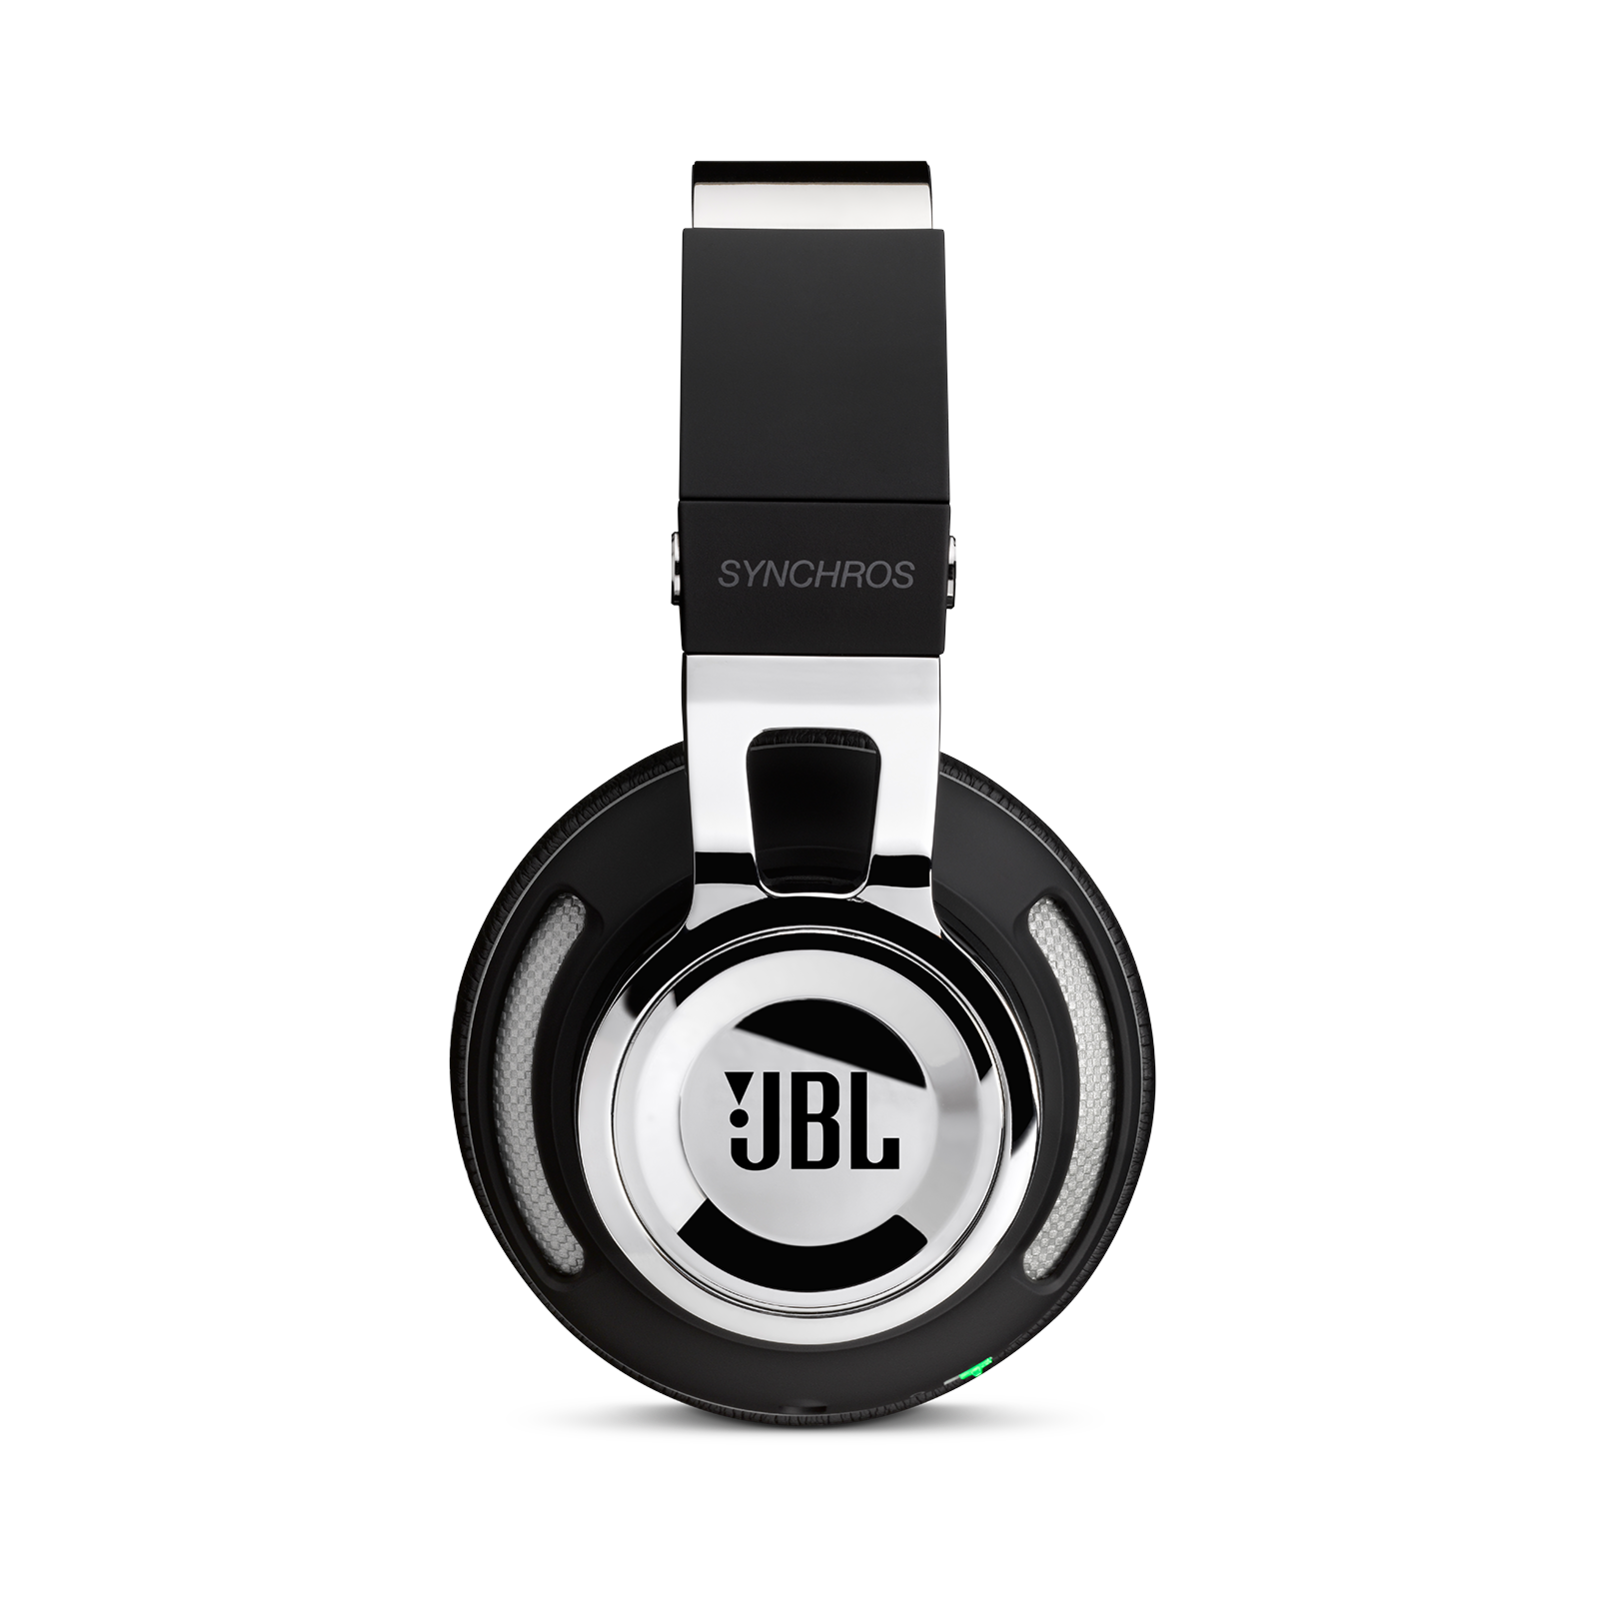 JBL Synchros Chrome Edition, Powered Over-Ear Headphones $99 + Free Shipping!